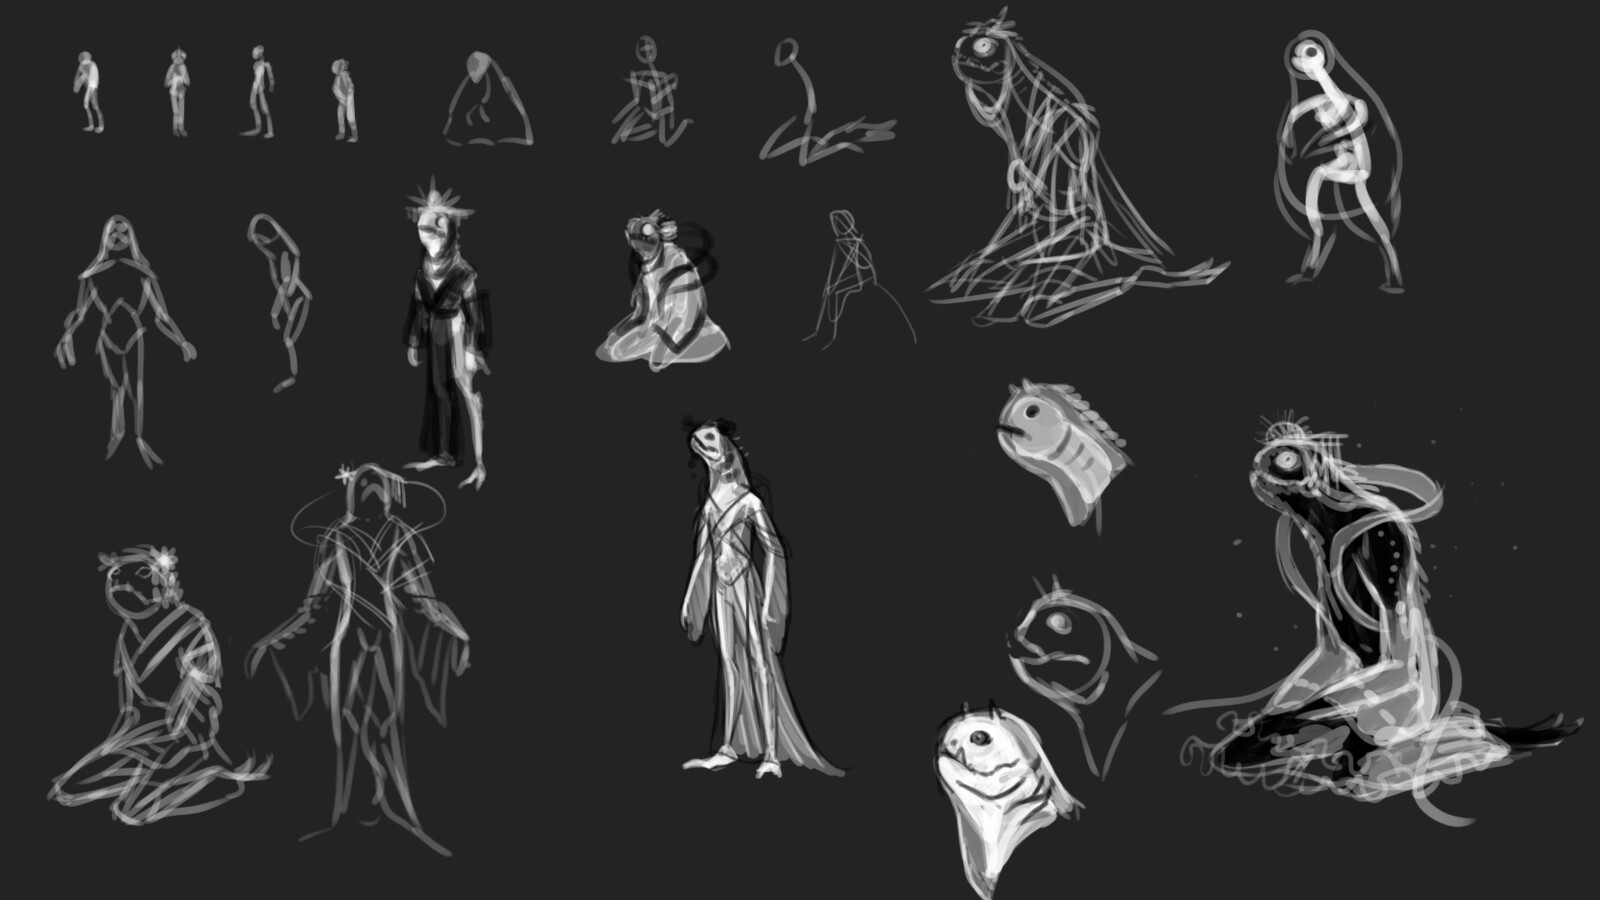 Ideation sketches